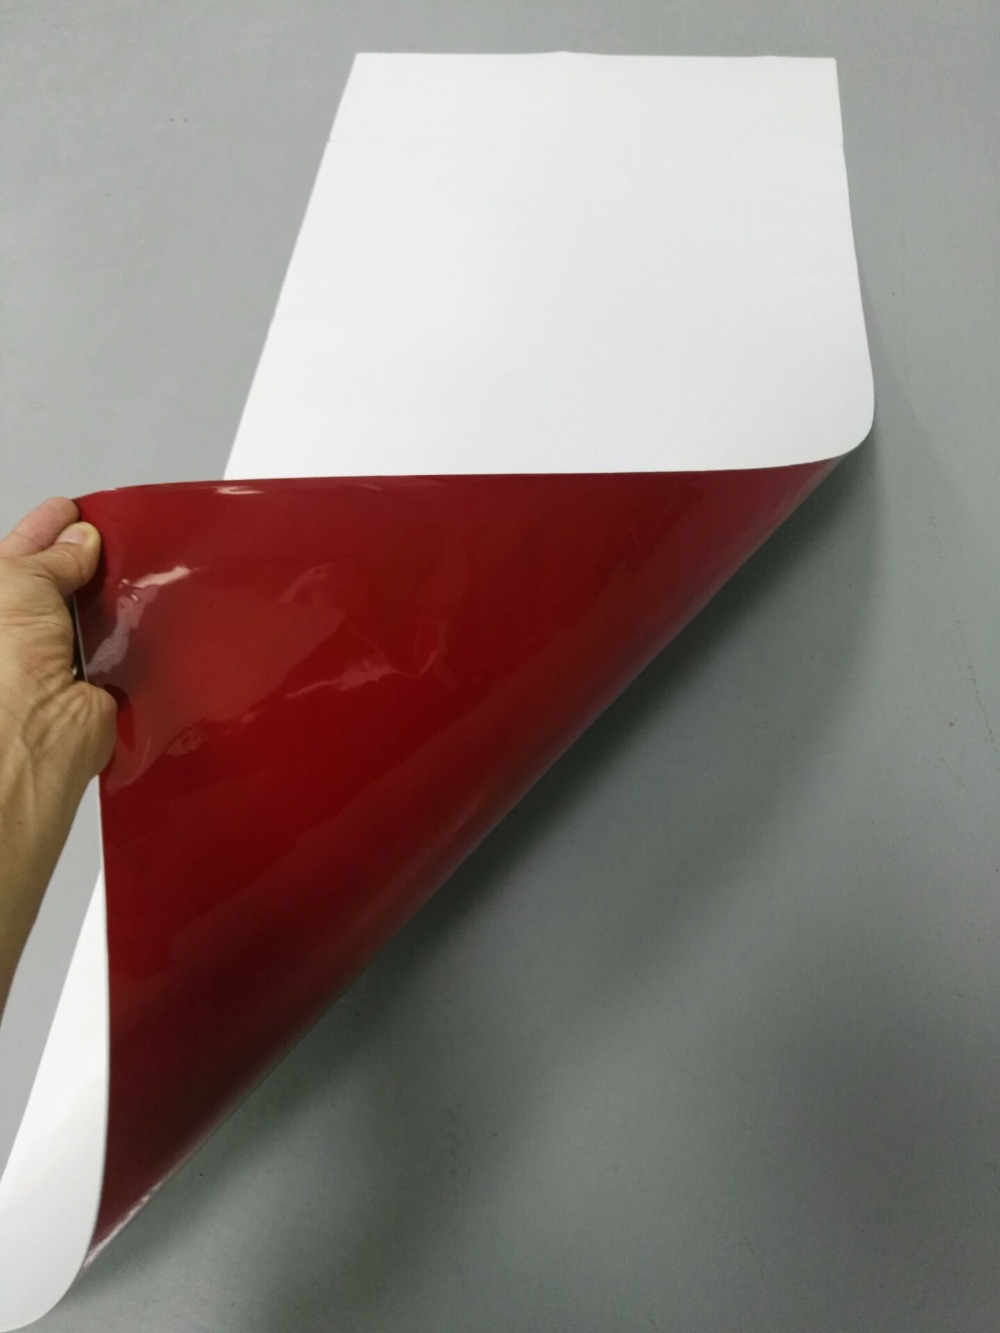 Newly semi flexible solar panel glue double adhesive glue for solar panel size of 1050mm 540mm